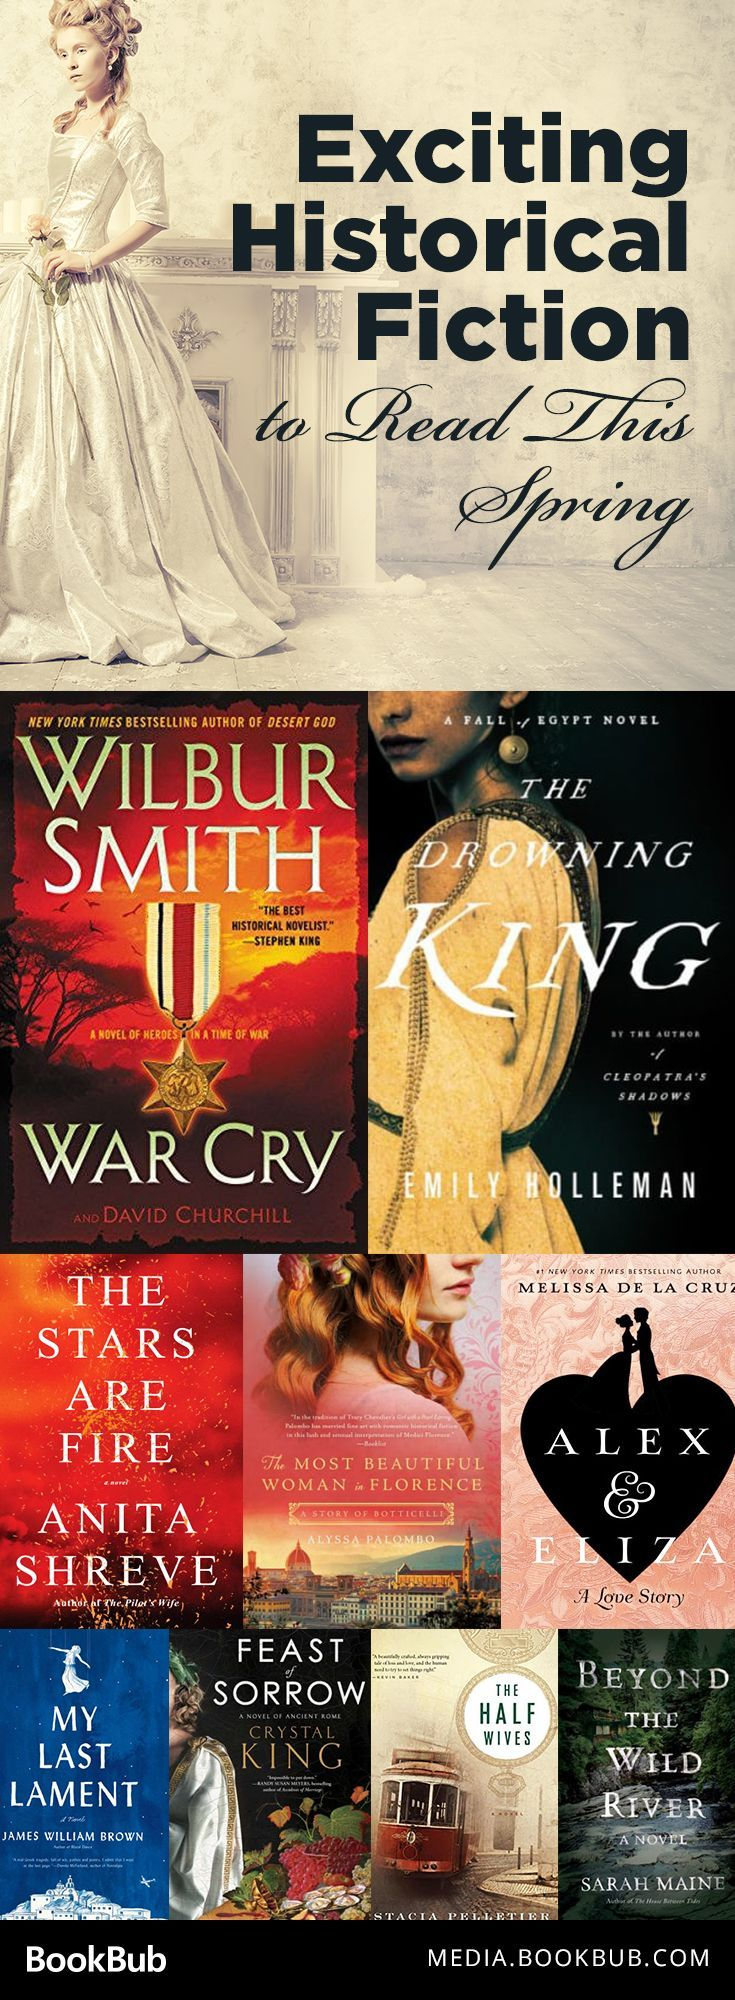 10 exciting historical fiction novels to read this spring. Including novels inspired by true stories.